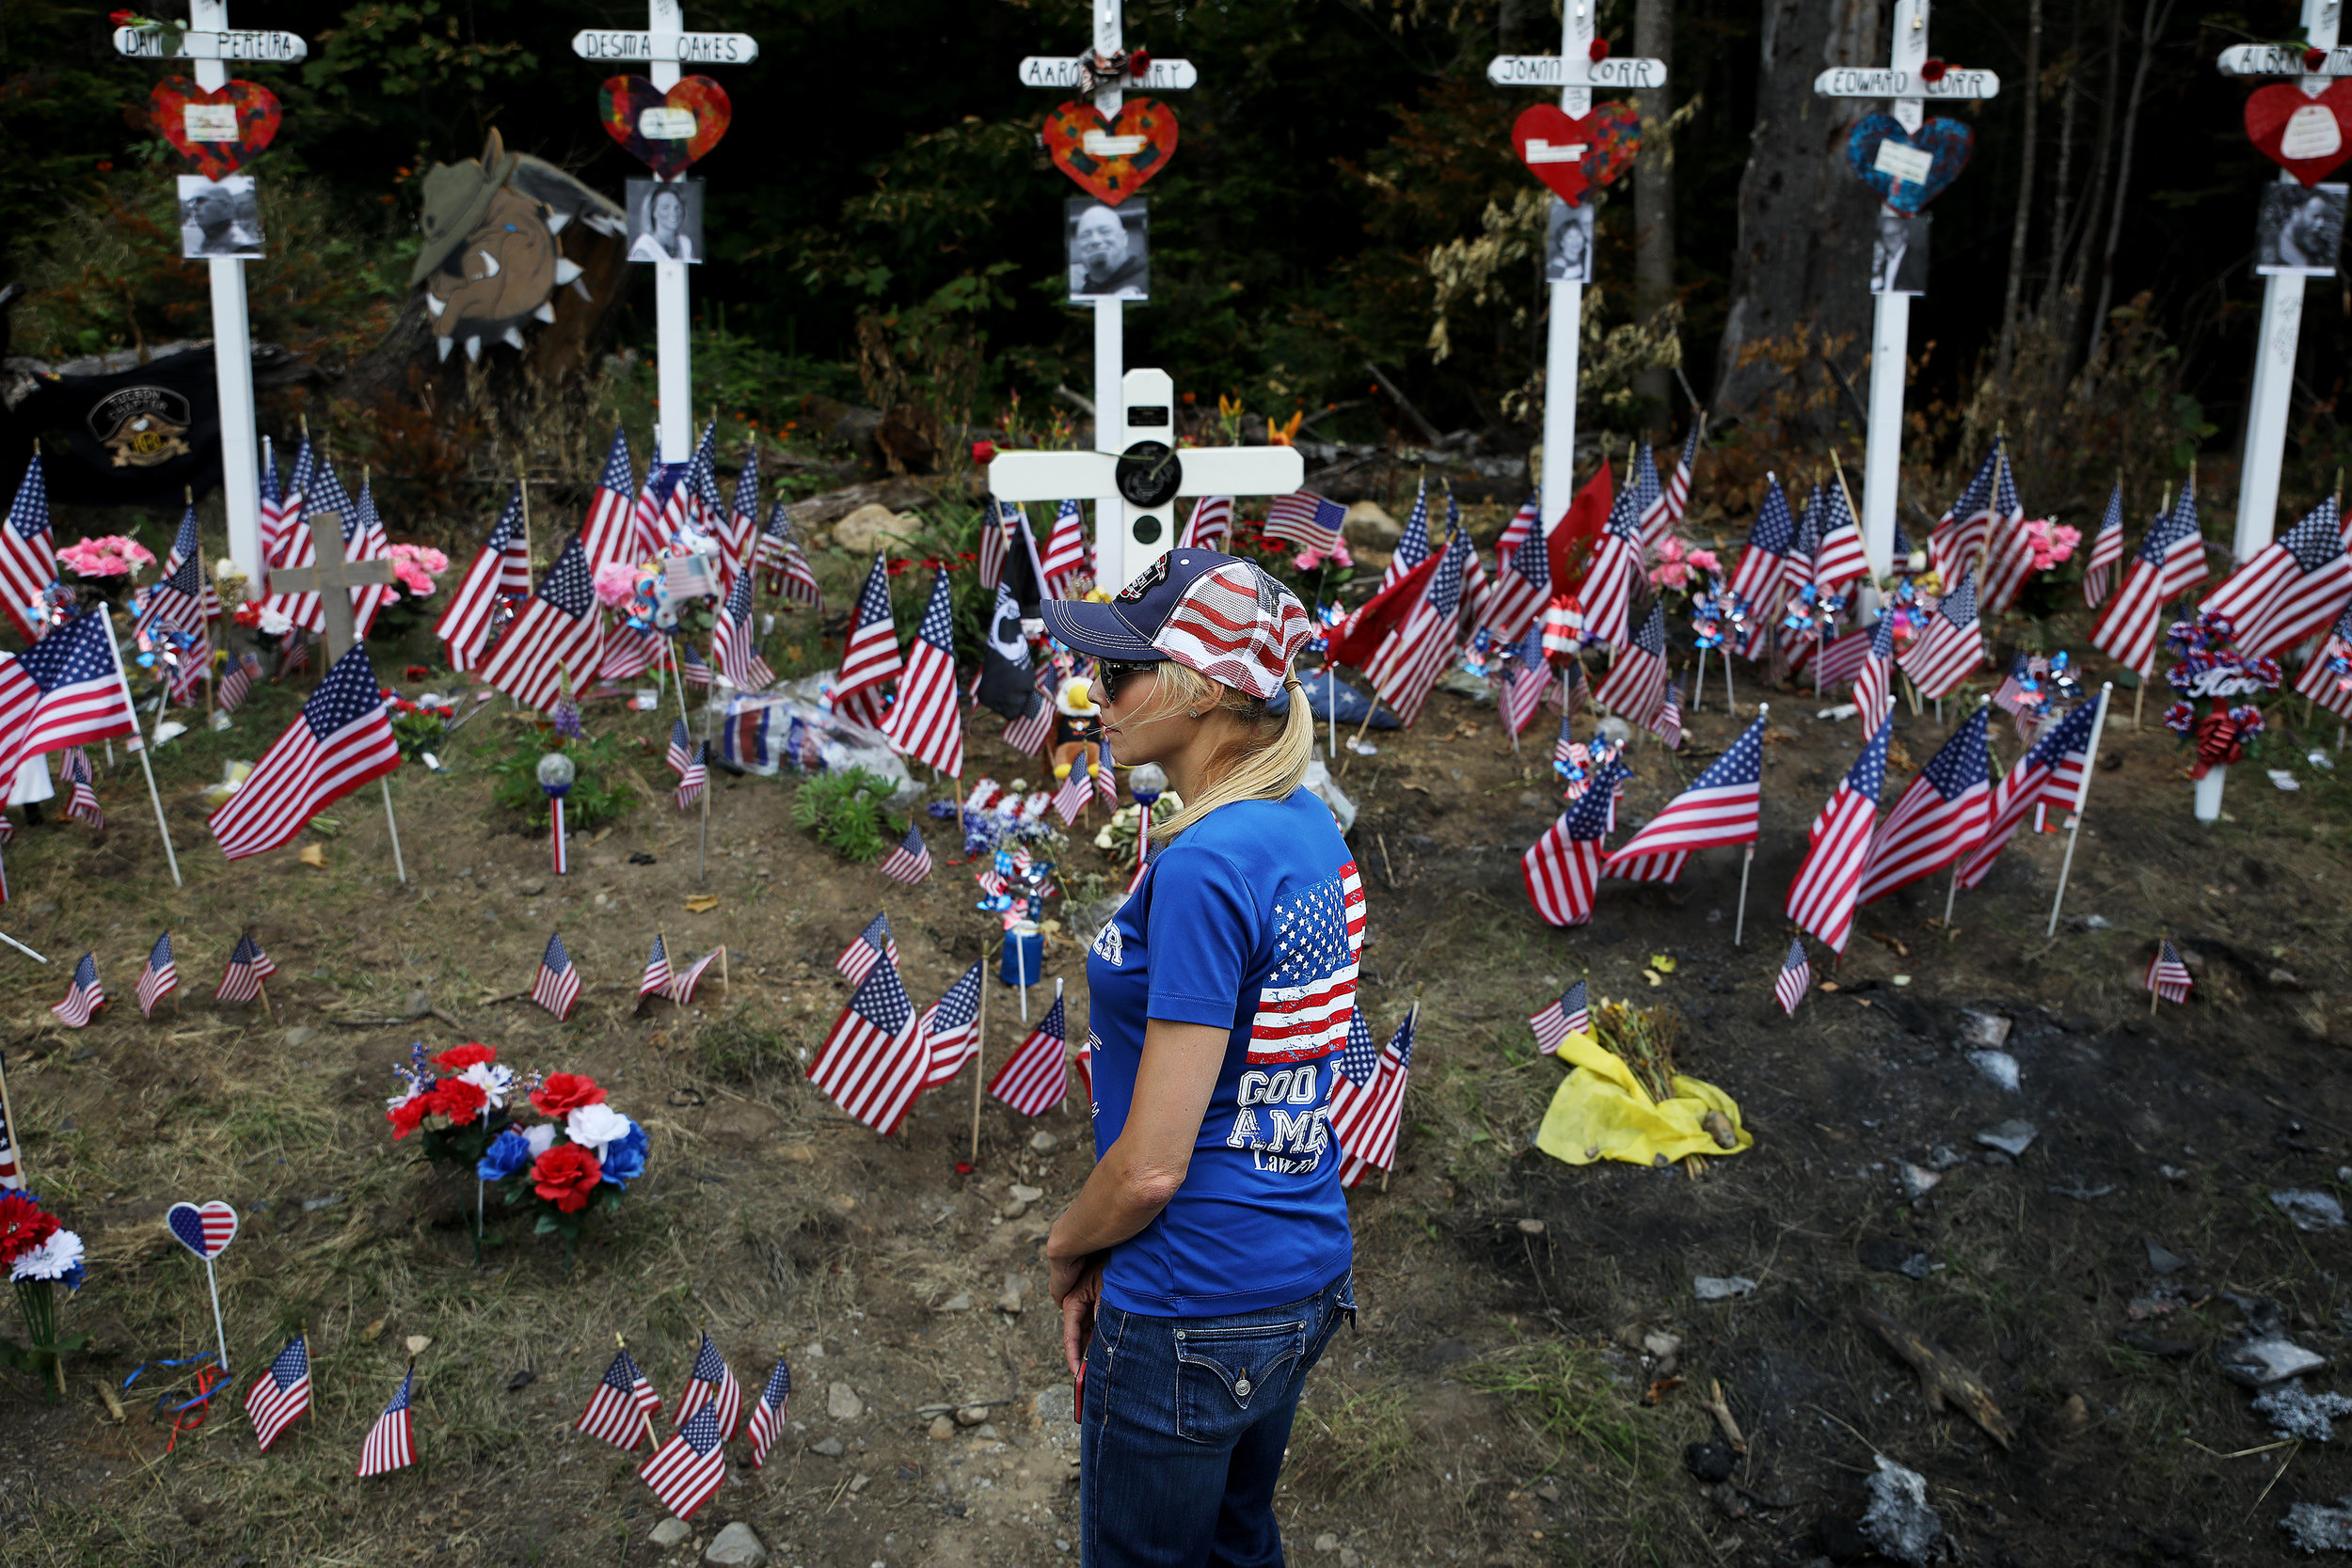 Fran Haash, of Tampa, Florida, looks at the memorial site where seven bikers recently lost their lives. Thousands of motorcyclists from all over New England rode together and convened at the crash site where seven motorcyclists were killed in a collision with a pickup truck.